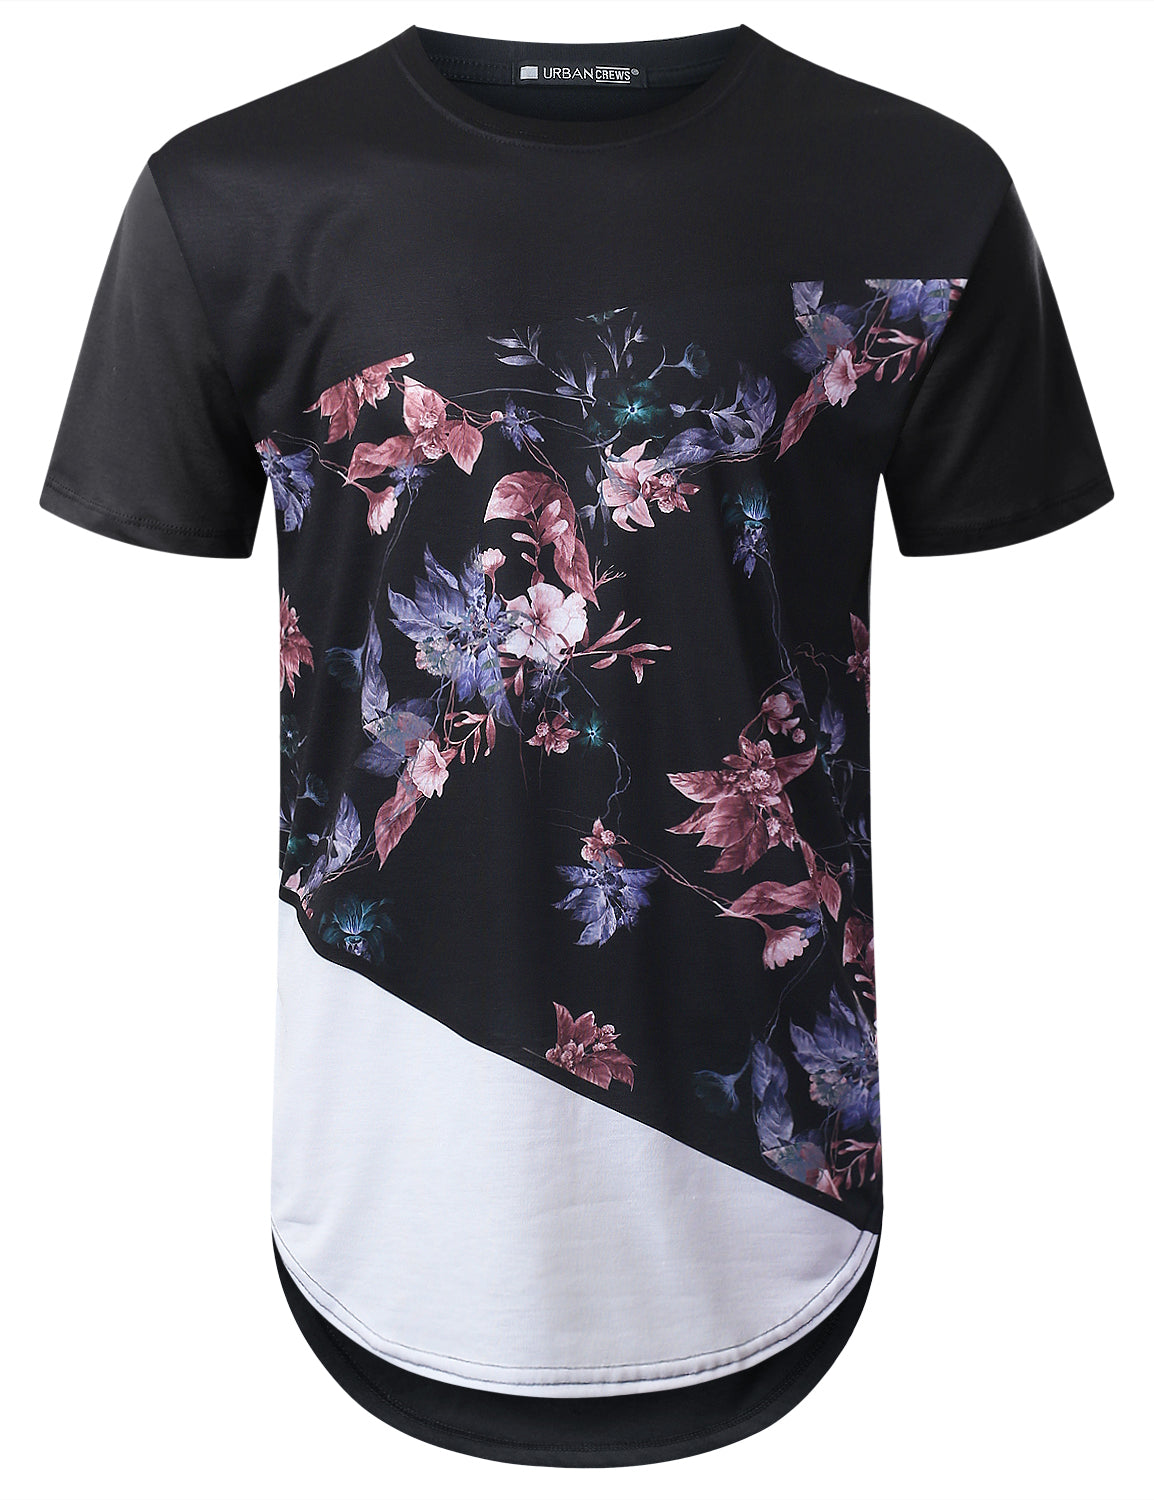 BLACK Fashion Panel Floral Longline T-shirt - URBANCREWS